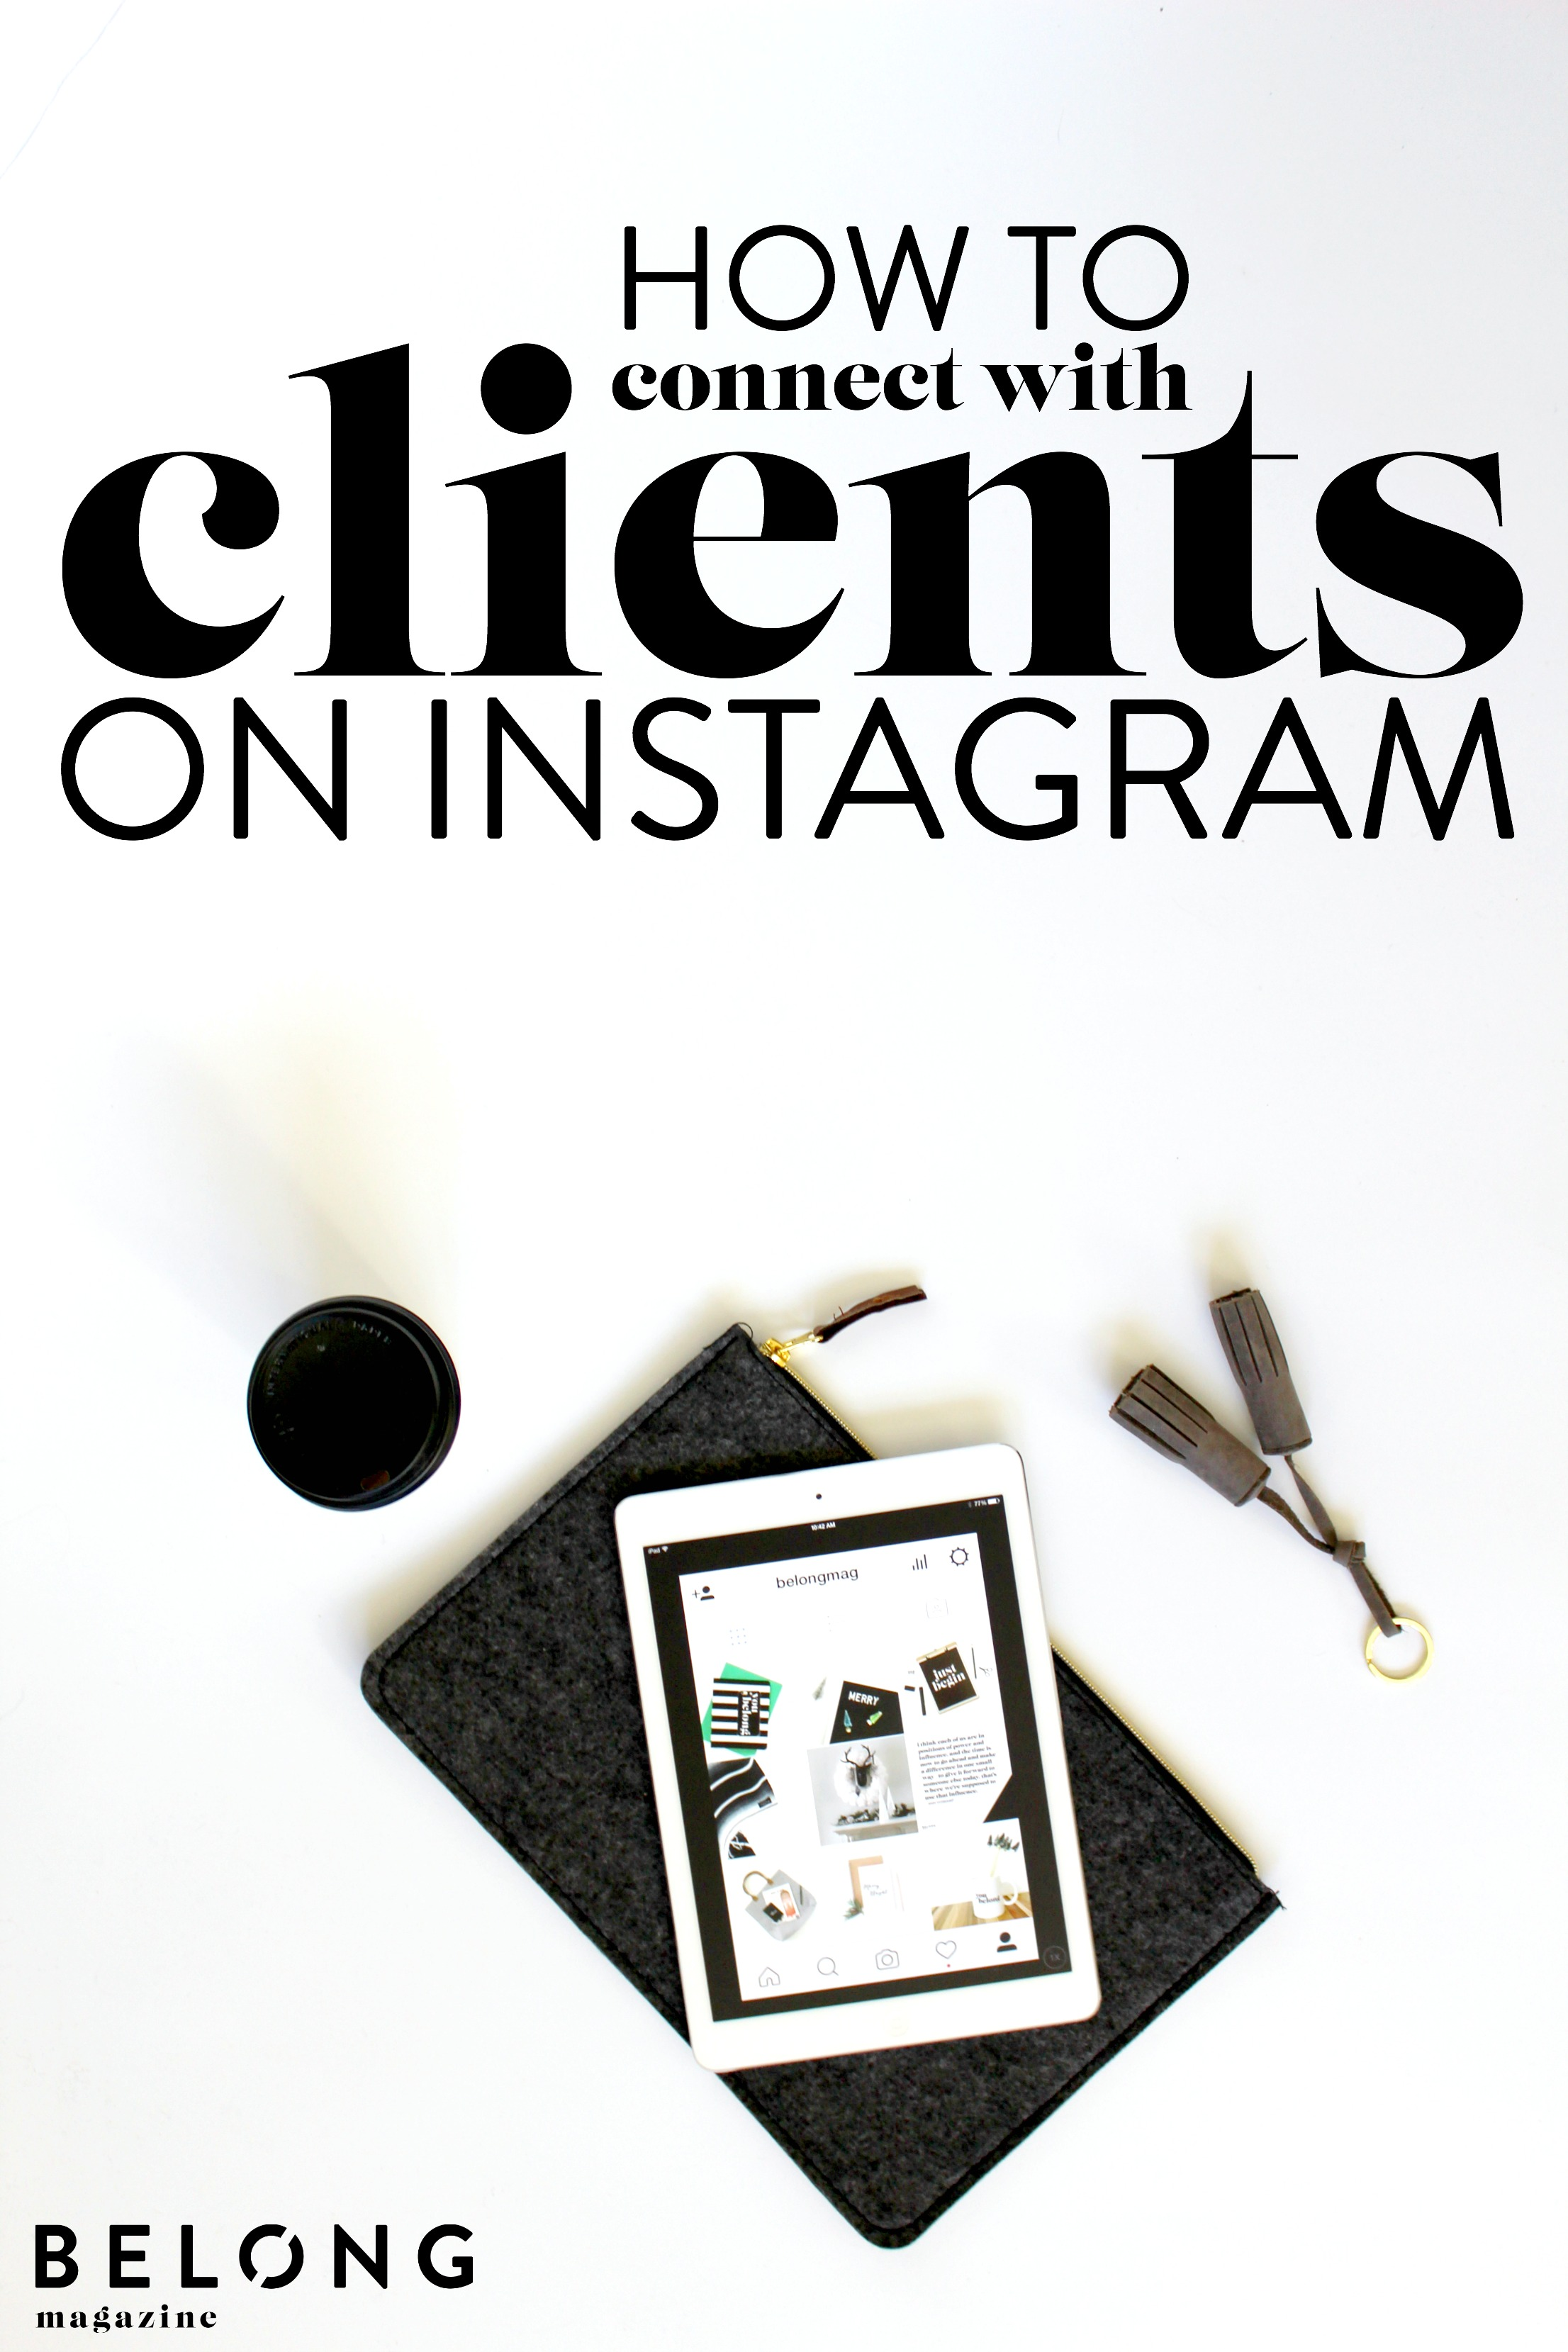 how to connect with clients on instagram - belong magazine blog - female entrepreneurs, lady boss, women in business, customers